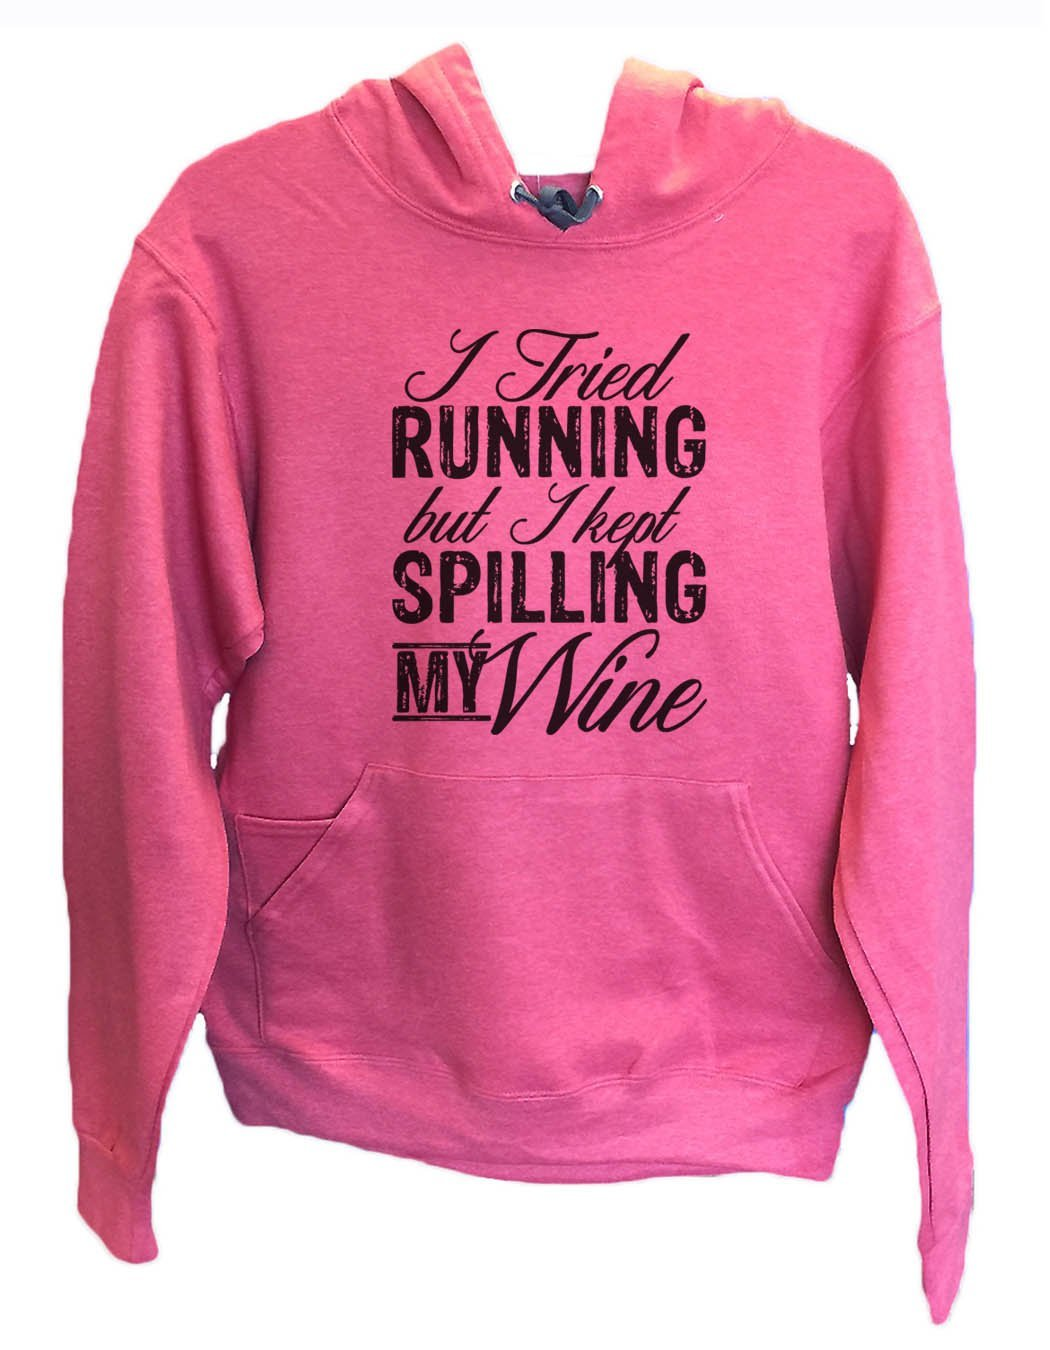 UNISEX HOODIE - I Tried Running But I Kept Spilling My Wine - FUNNY MENS AND WOMENS HOODED SWEATSHIRTS - 2160 Funny Shirt Small / Cranberry Red